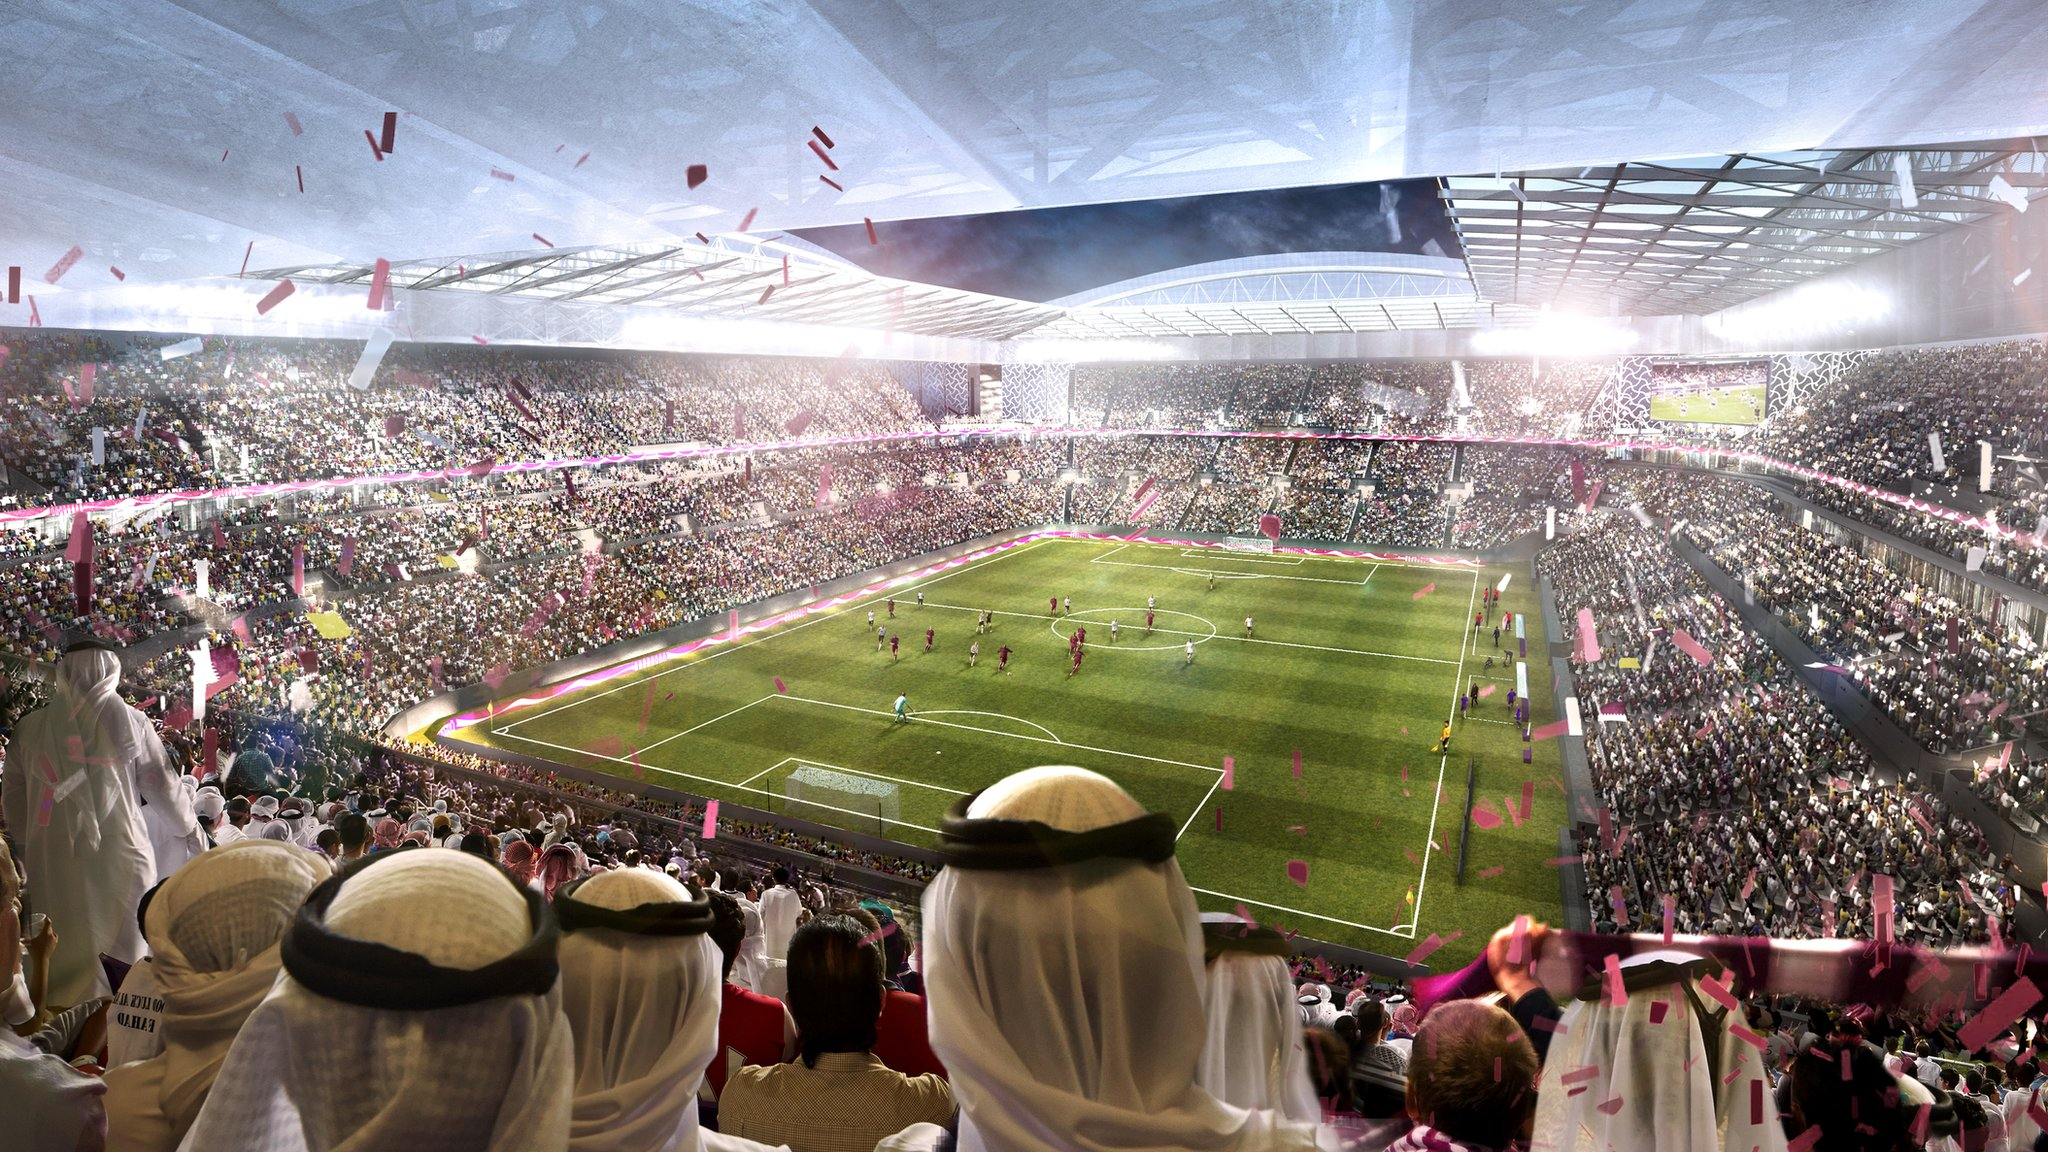 Qatar World Cup 2022: Four years out, what do we know so far?